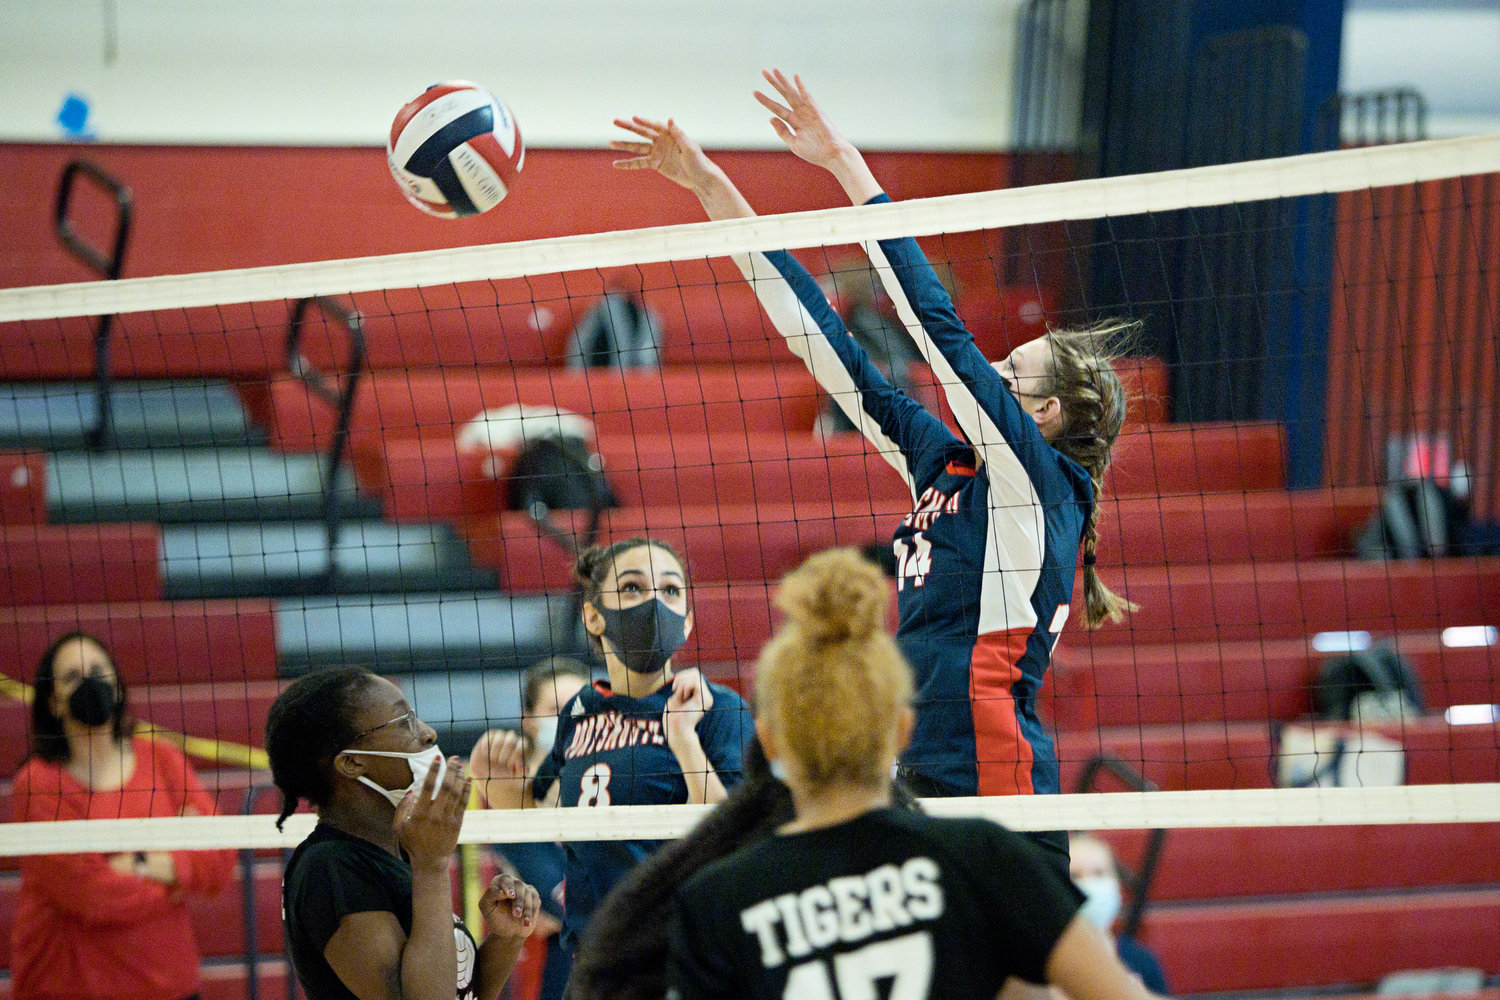 Serena Mirisola looks on as teammate Morgan Casey blocks the ball from coming over the net during Friday night's game.